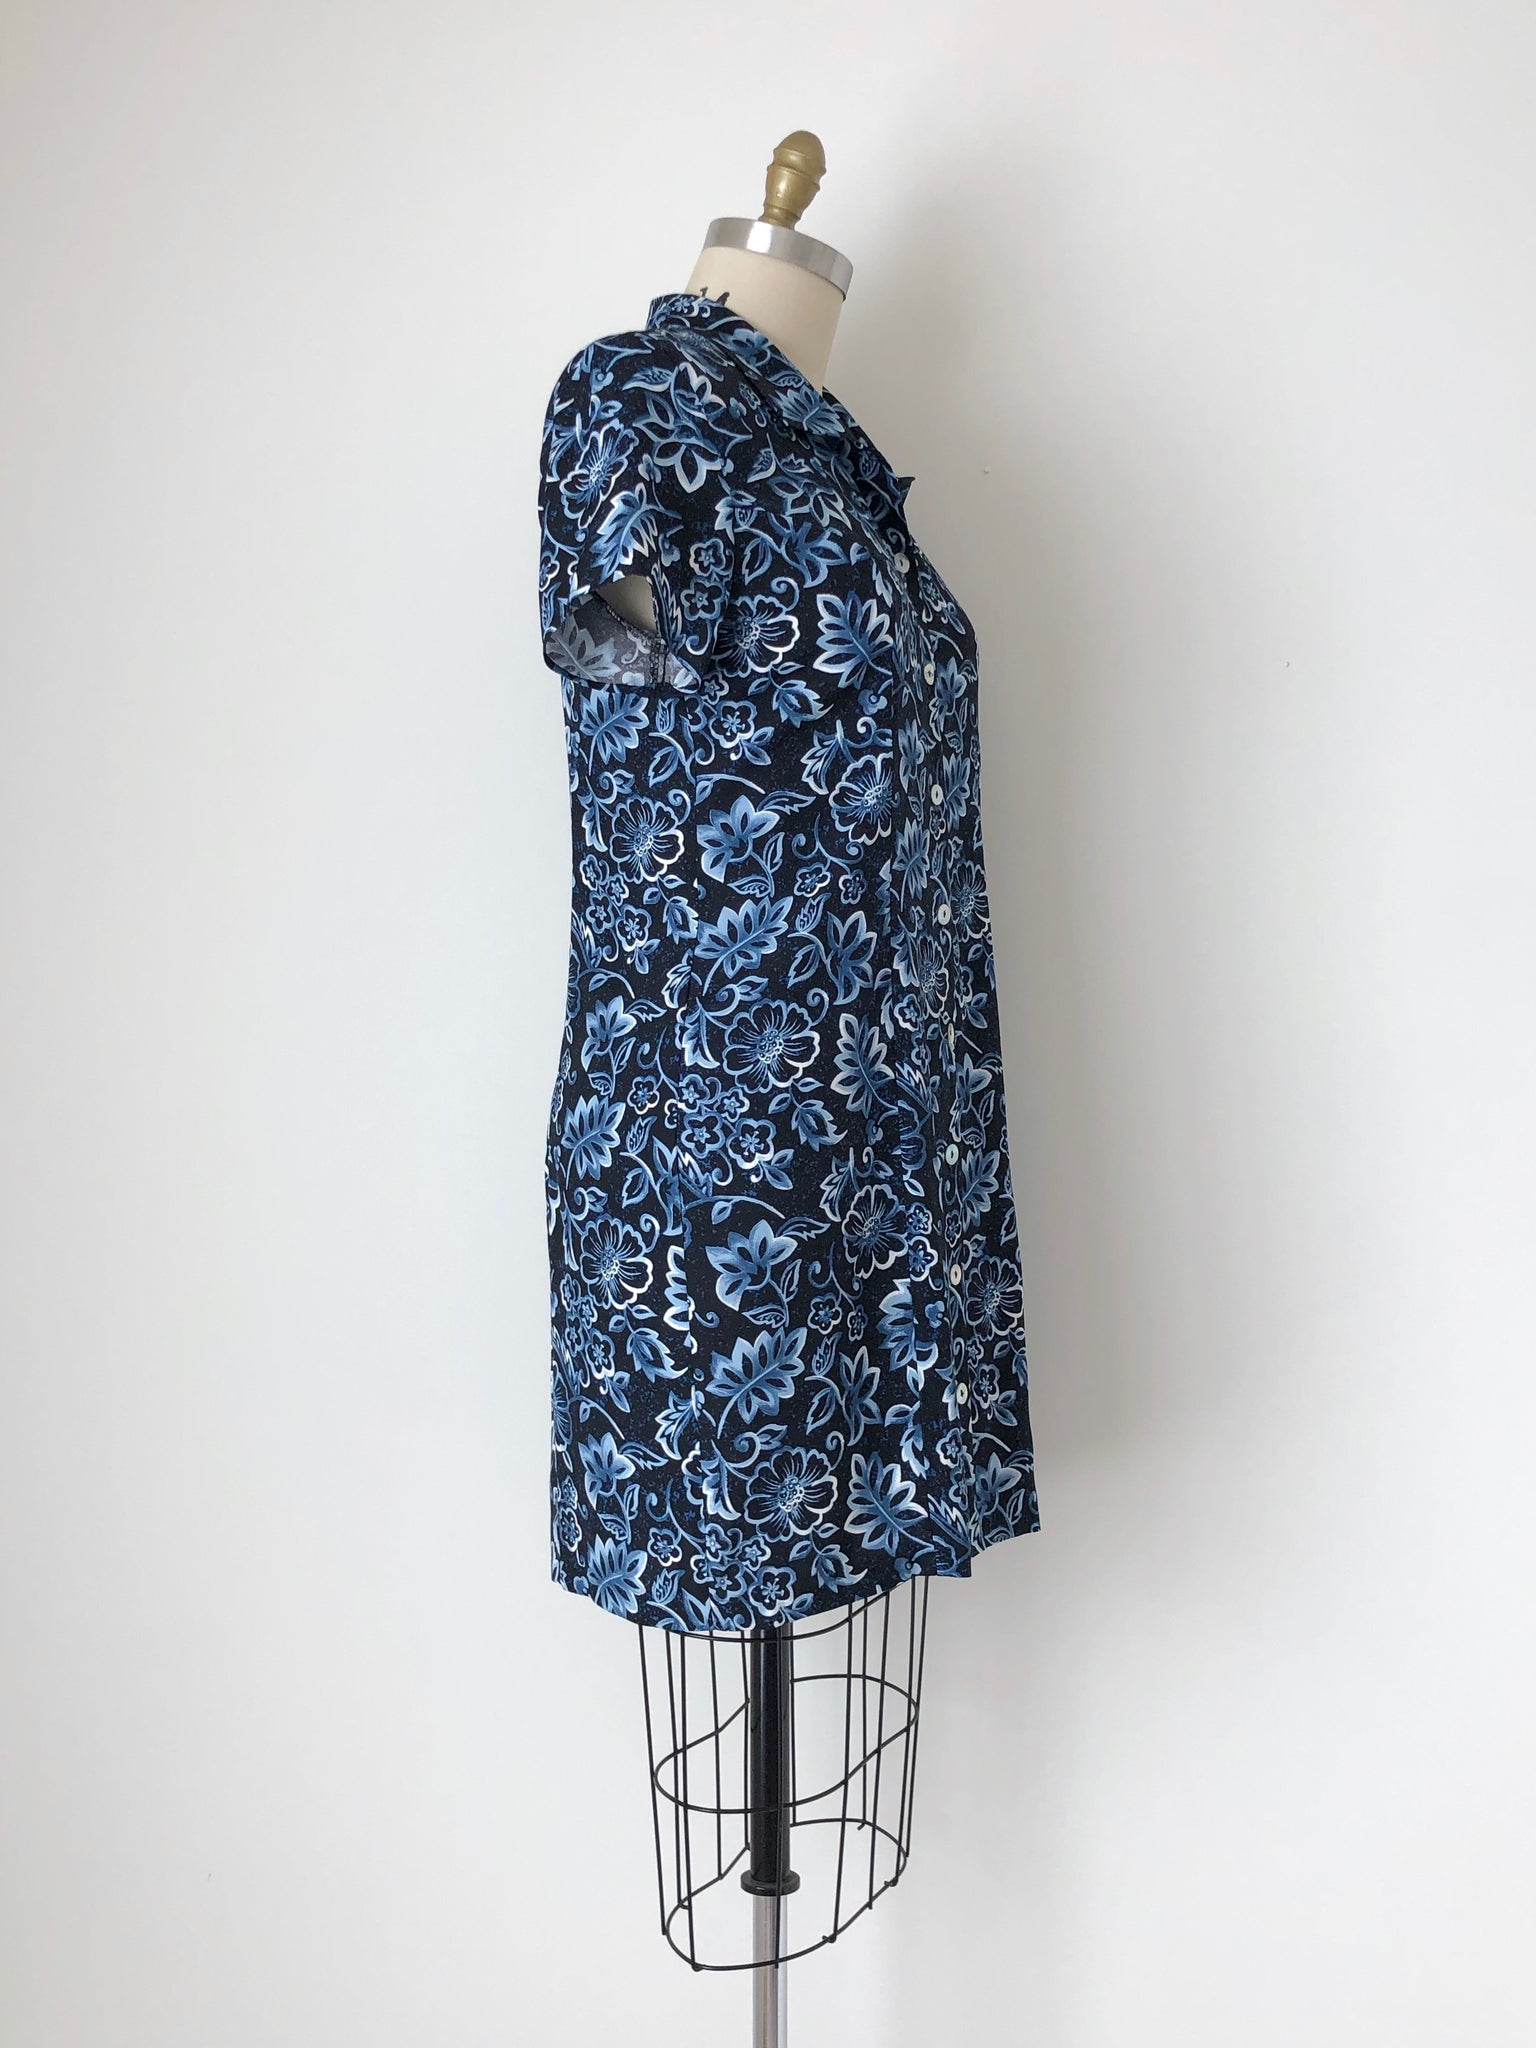 Women's Vintage 90s Black and Blue Floral Print Rayon Dress by Paul Harris Design | Size Large | Canary Club Vintage